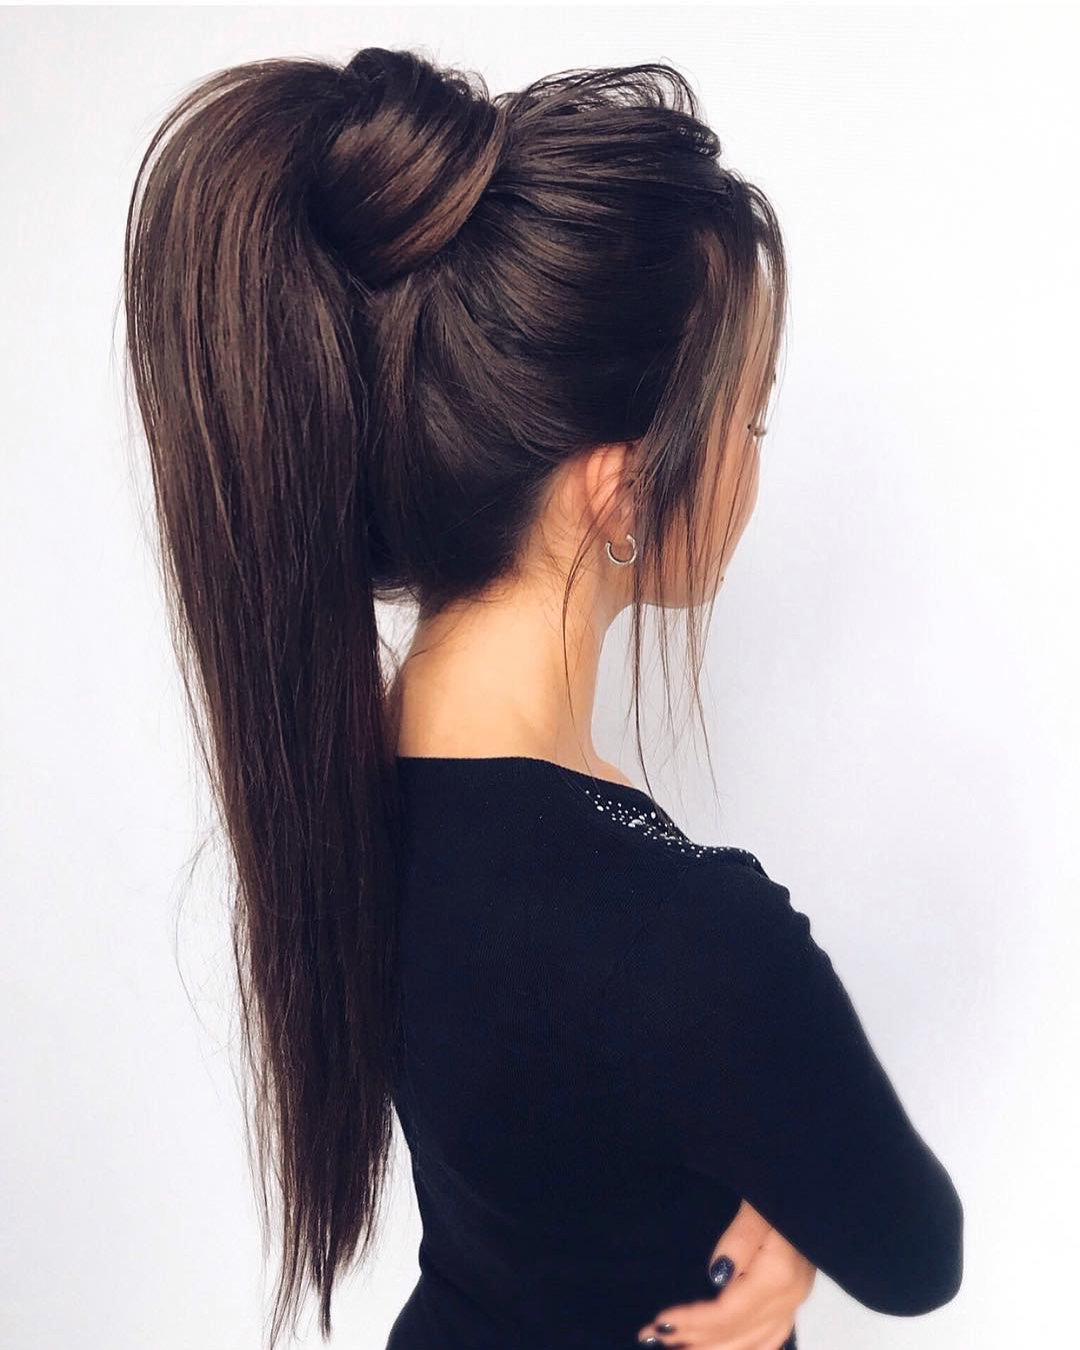 pony tail hairstyles extremely high smooth on dark hair_vera